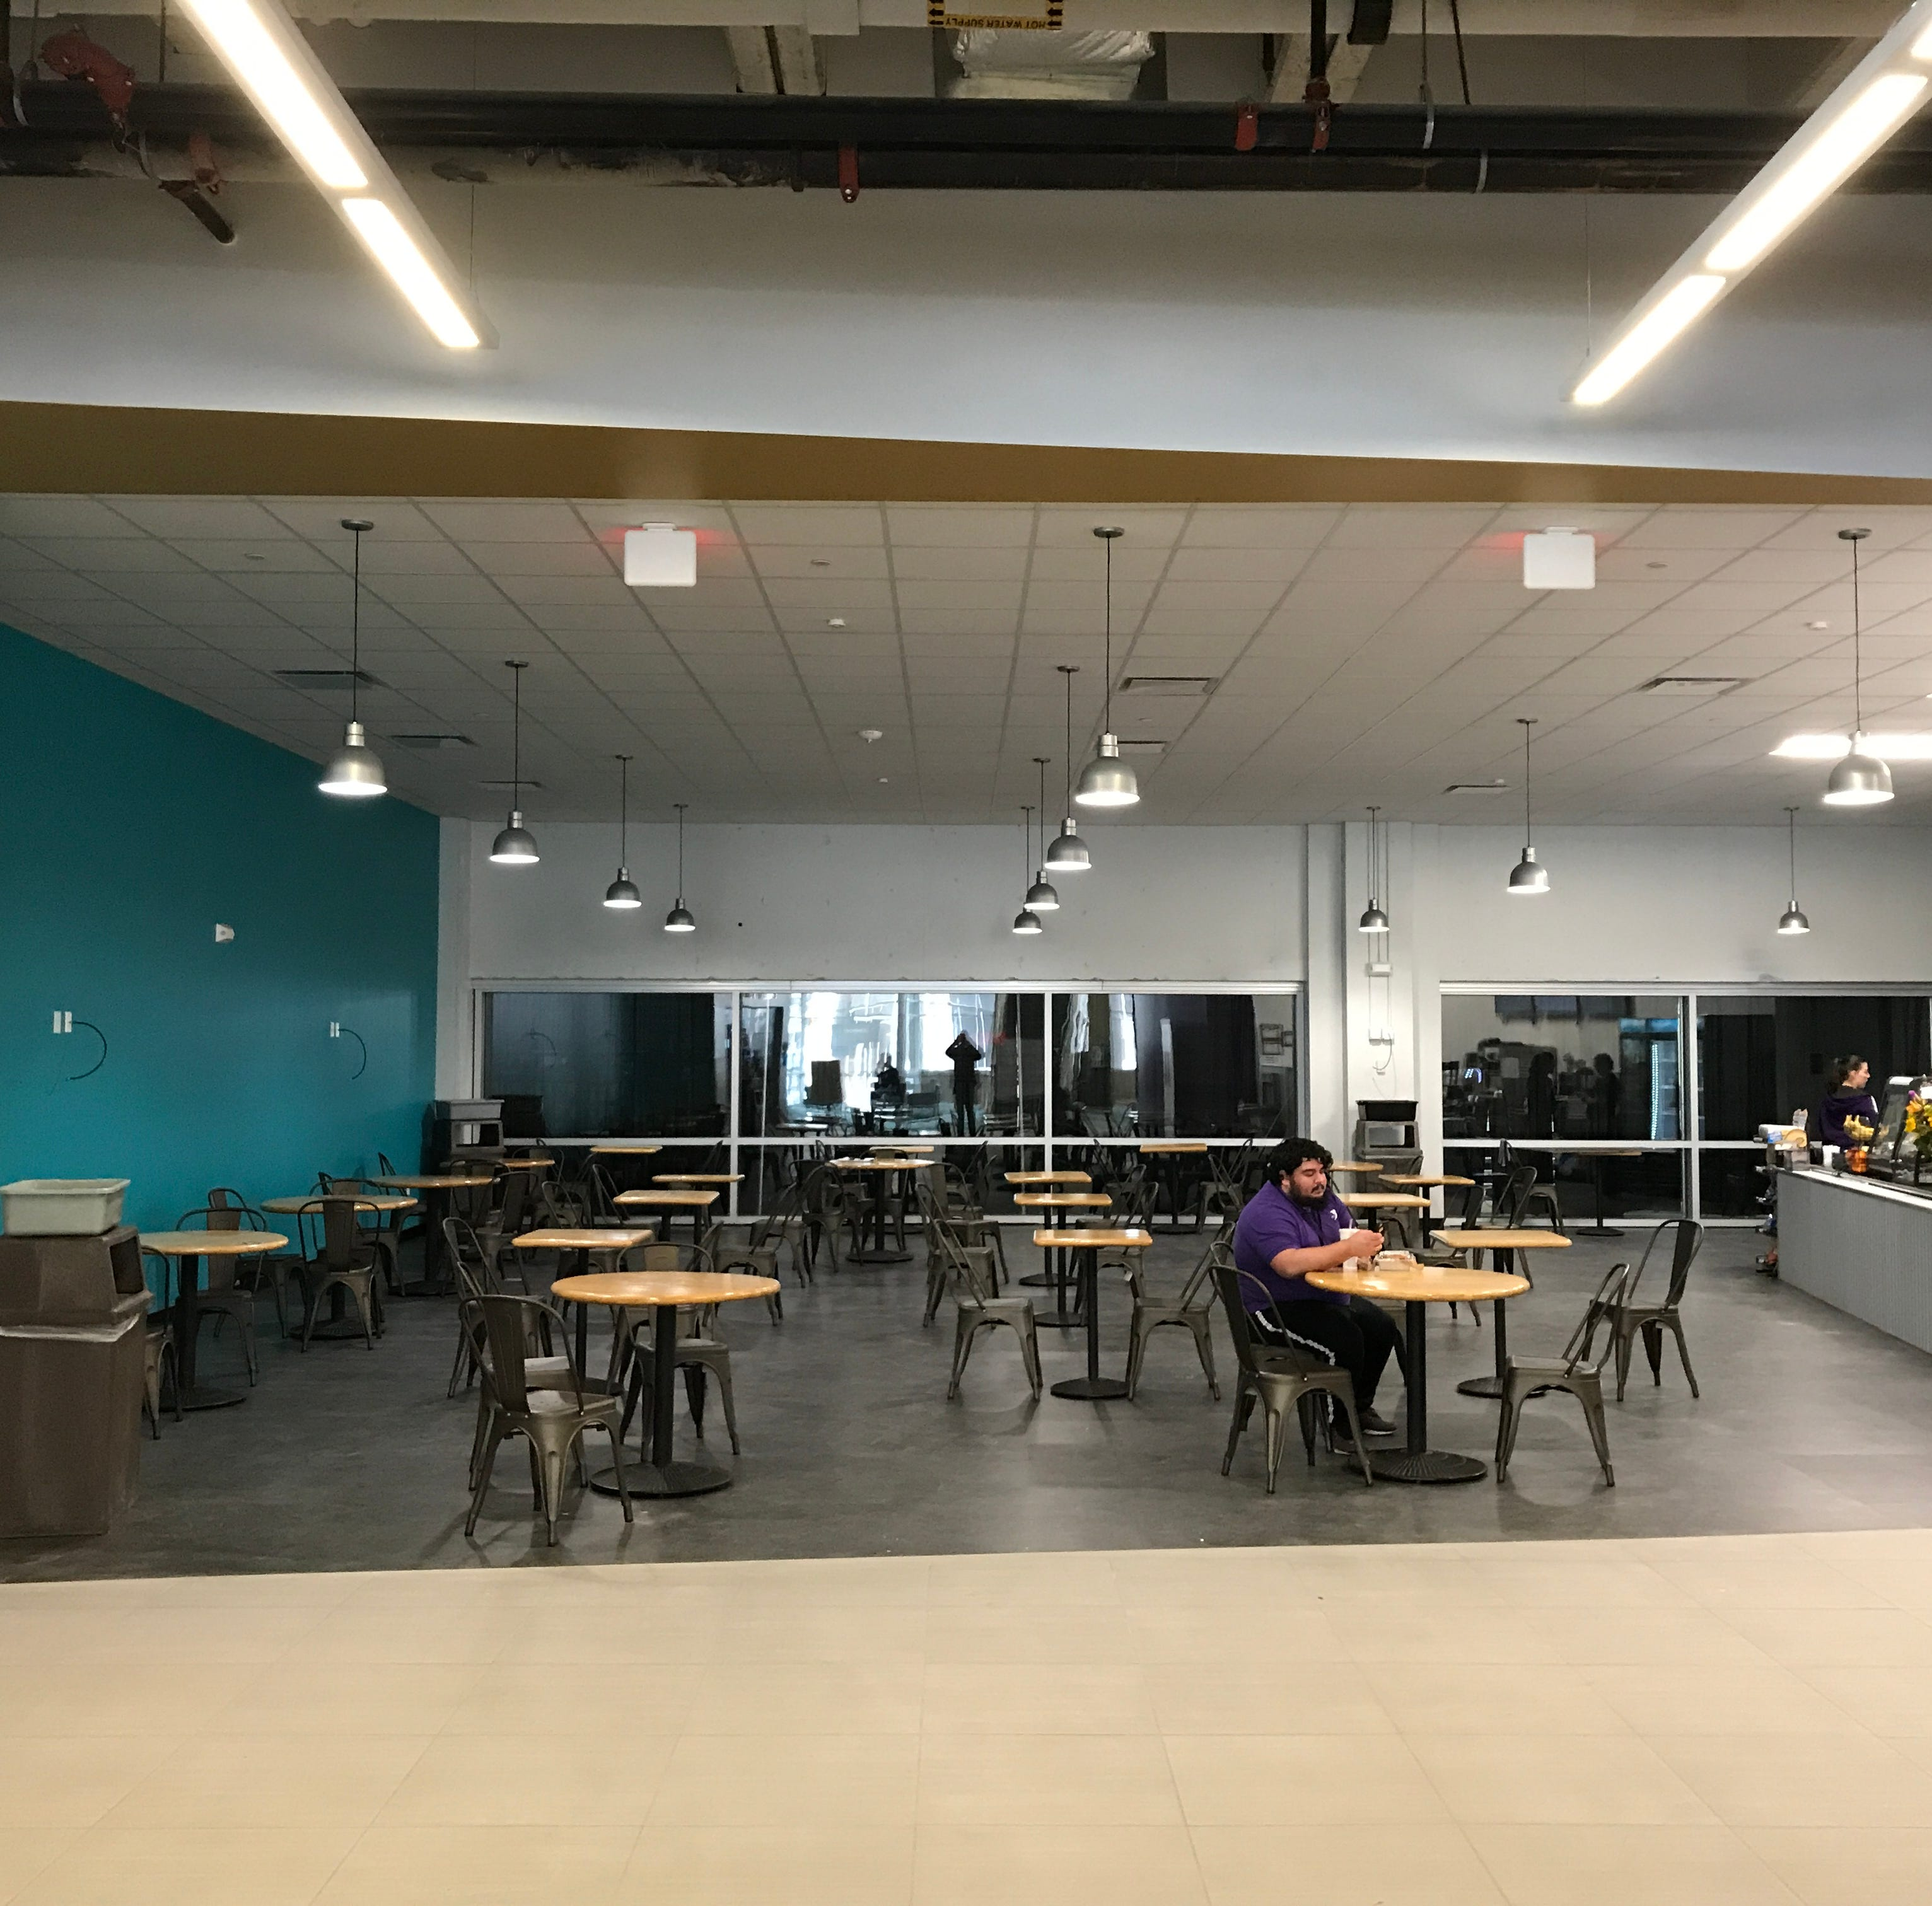 'Fuel up' at this new restaurant in the Wellmark YMCA off the downtown Des Moines skywalk